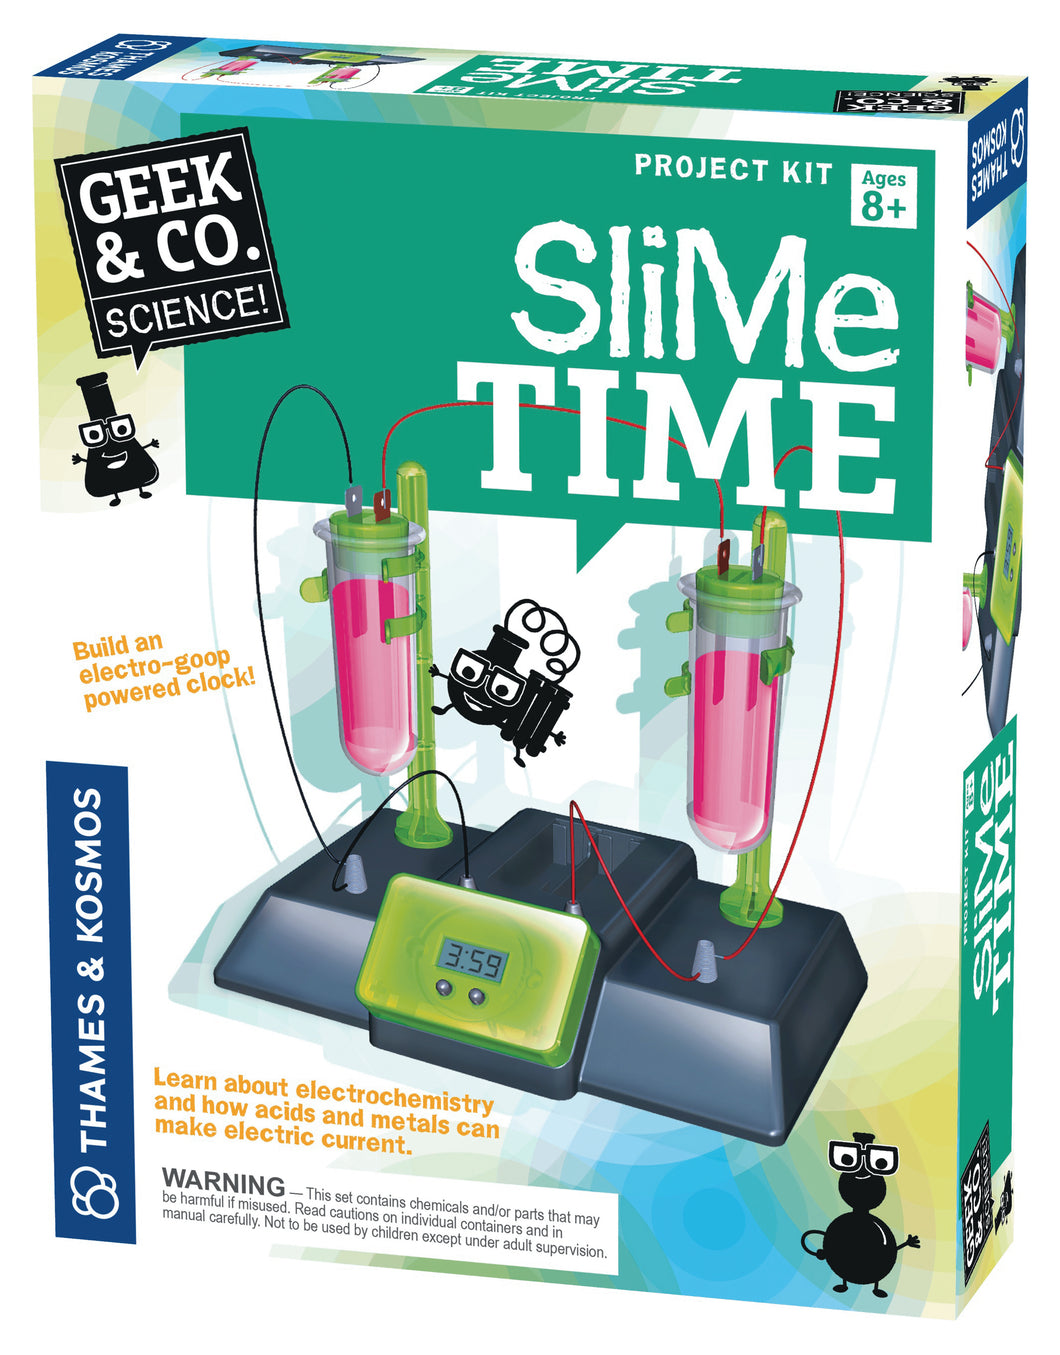 Slime Time by Geek & Co